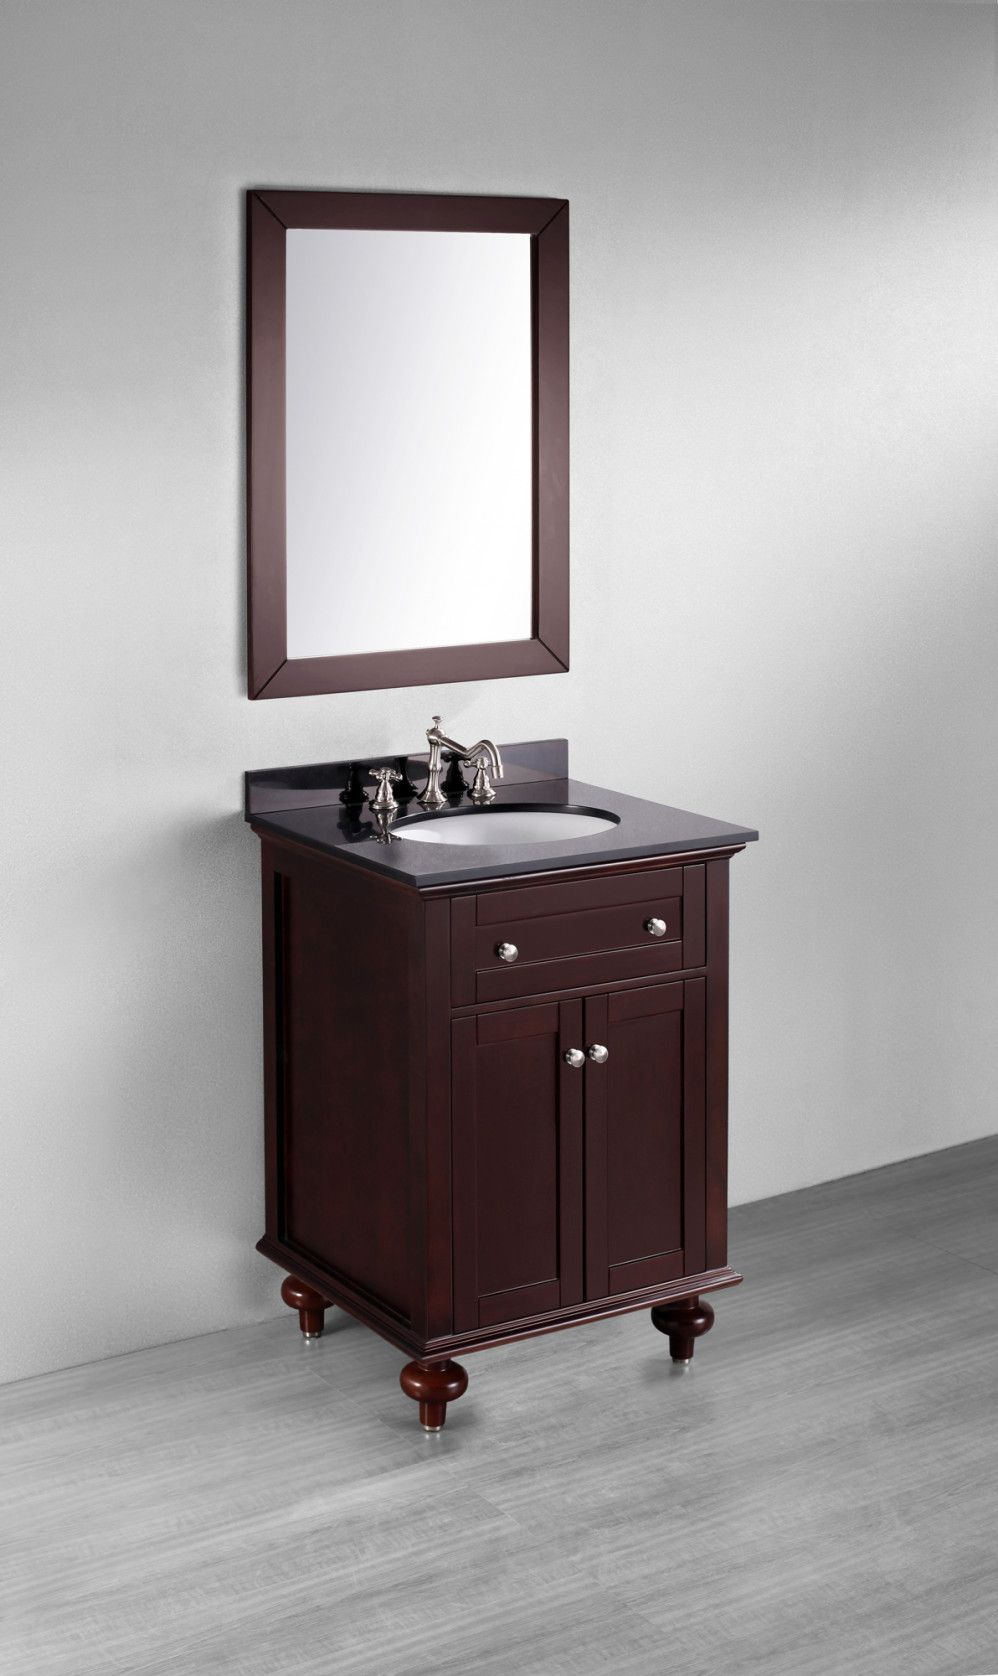 20 25 Inch Bathroom Vanity Cabinet Kitchen Floor Vinyl Ideas Check More At Http